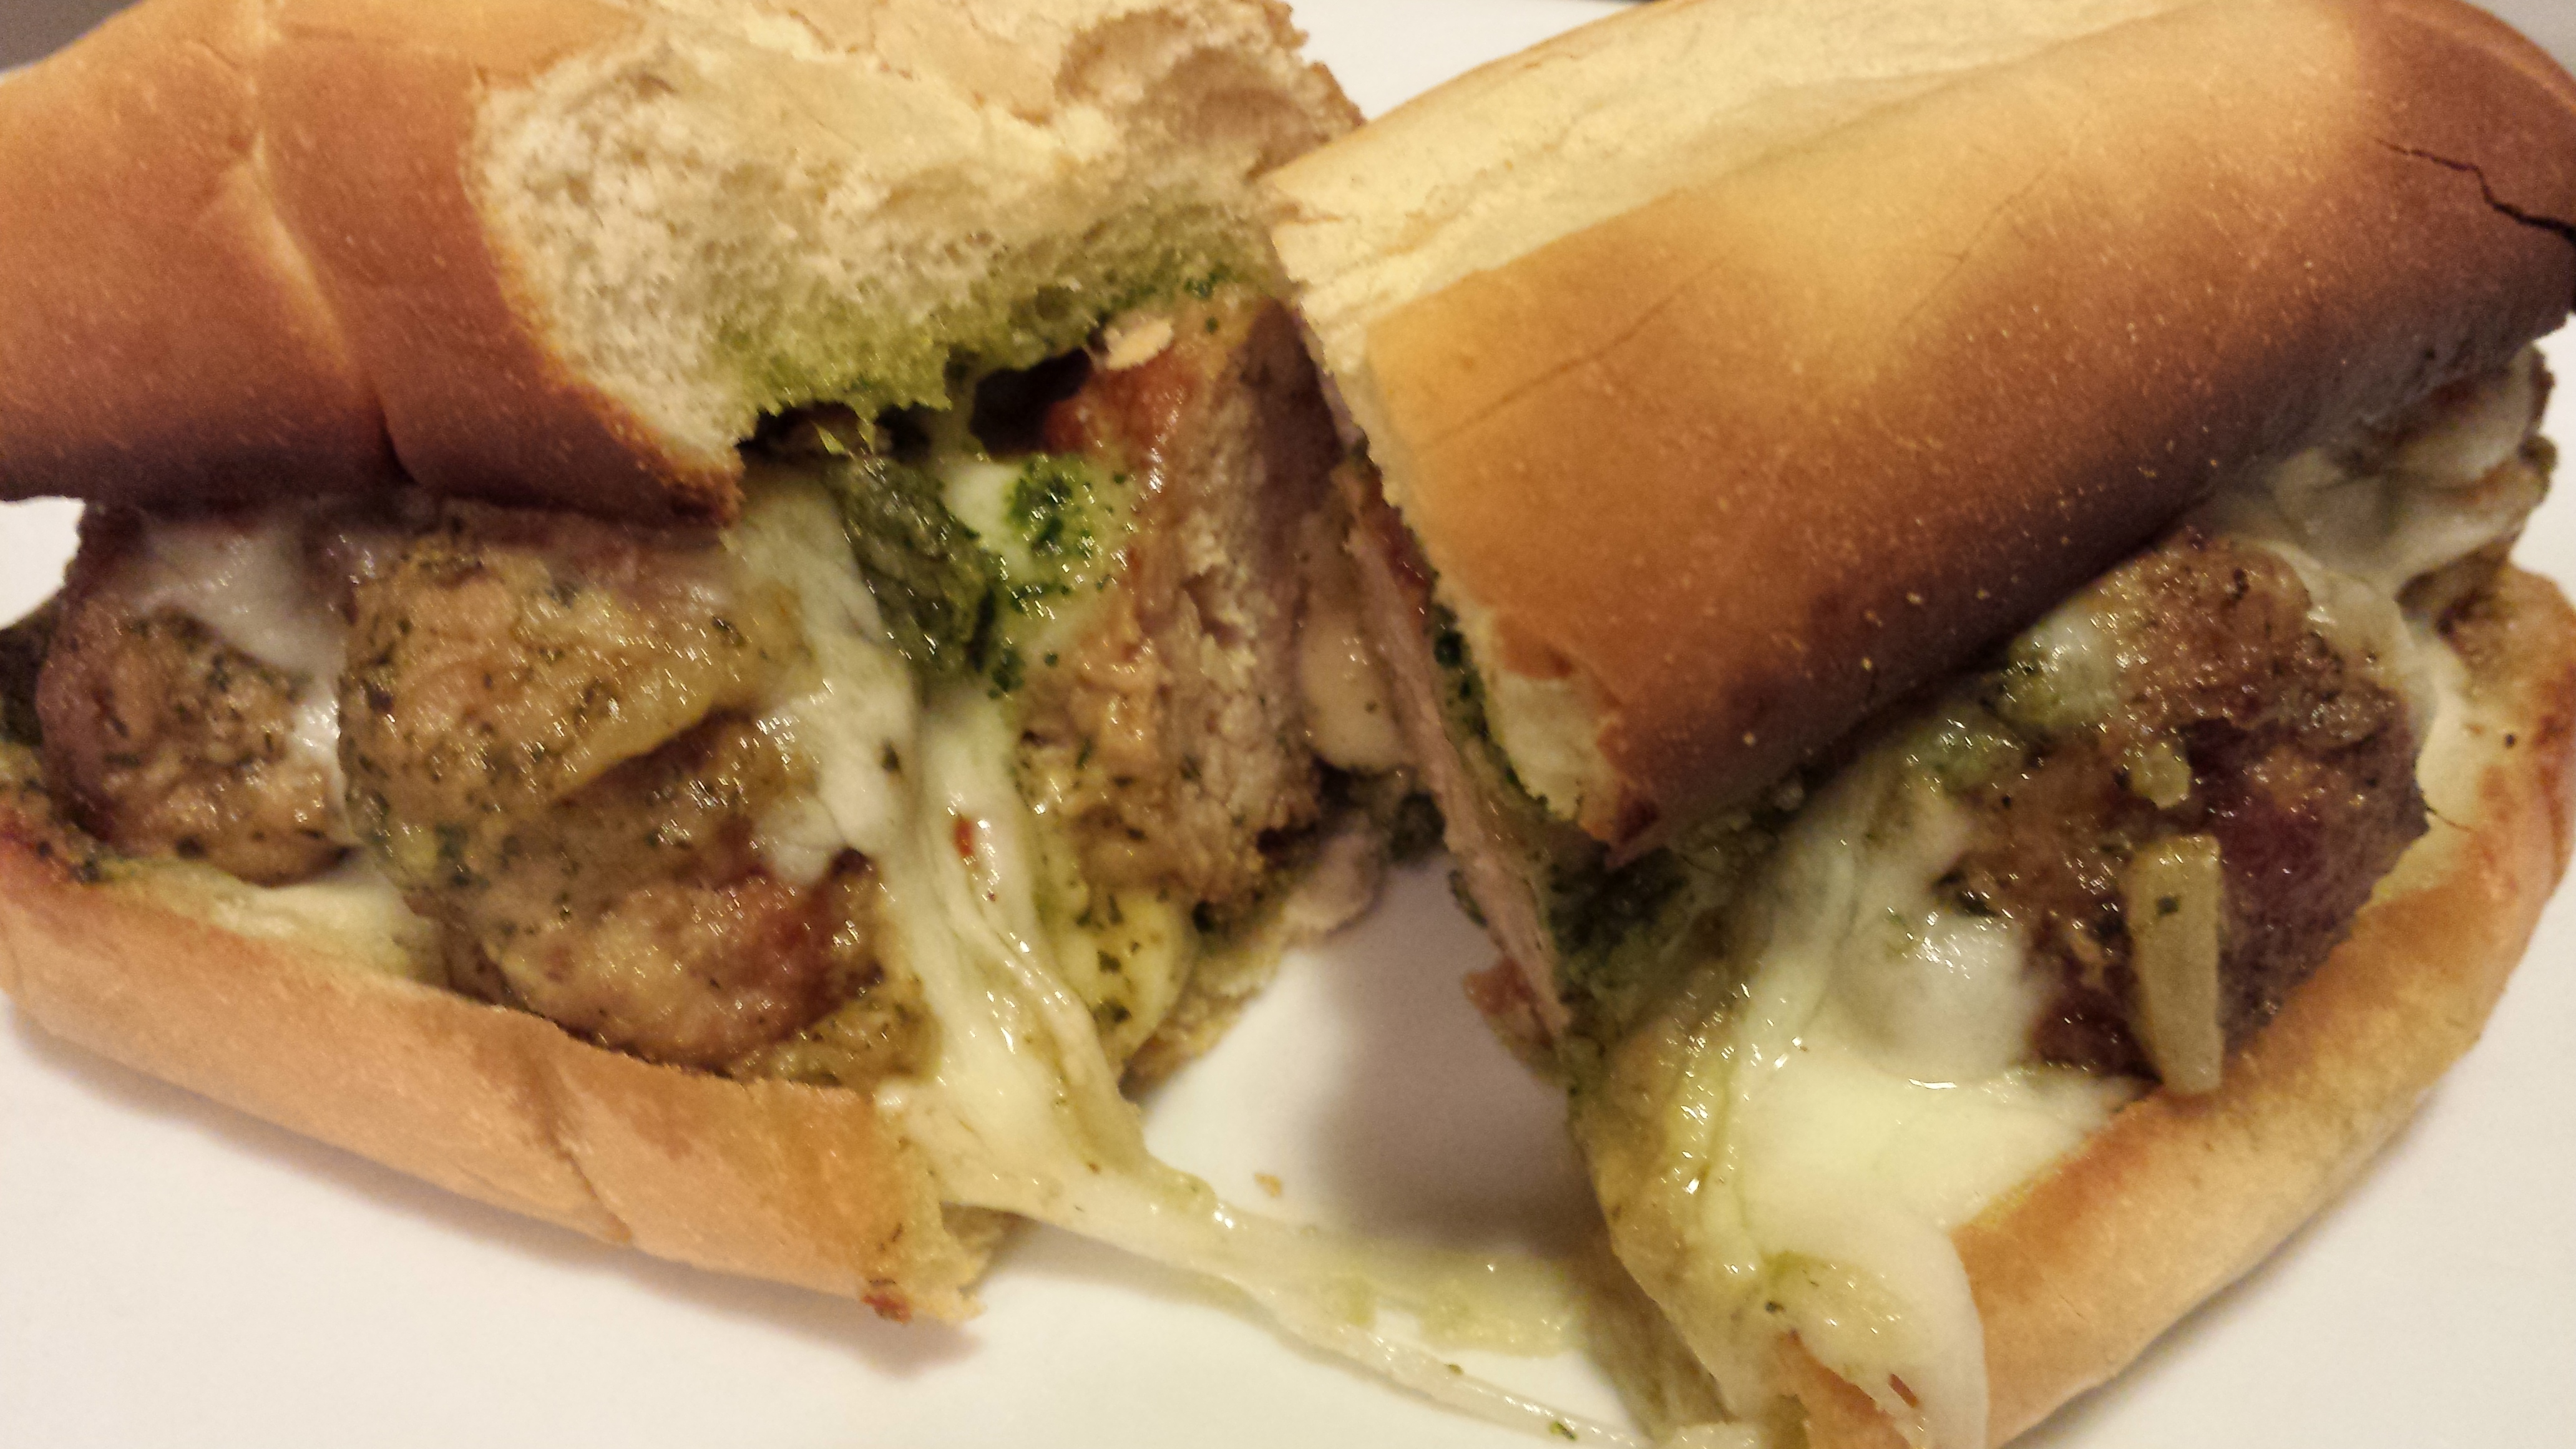 Cheesy Pesto Turkey Meatball Sandwich (Photo Credit: Adroit Ideals)